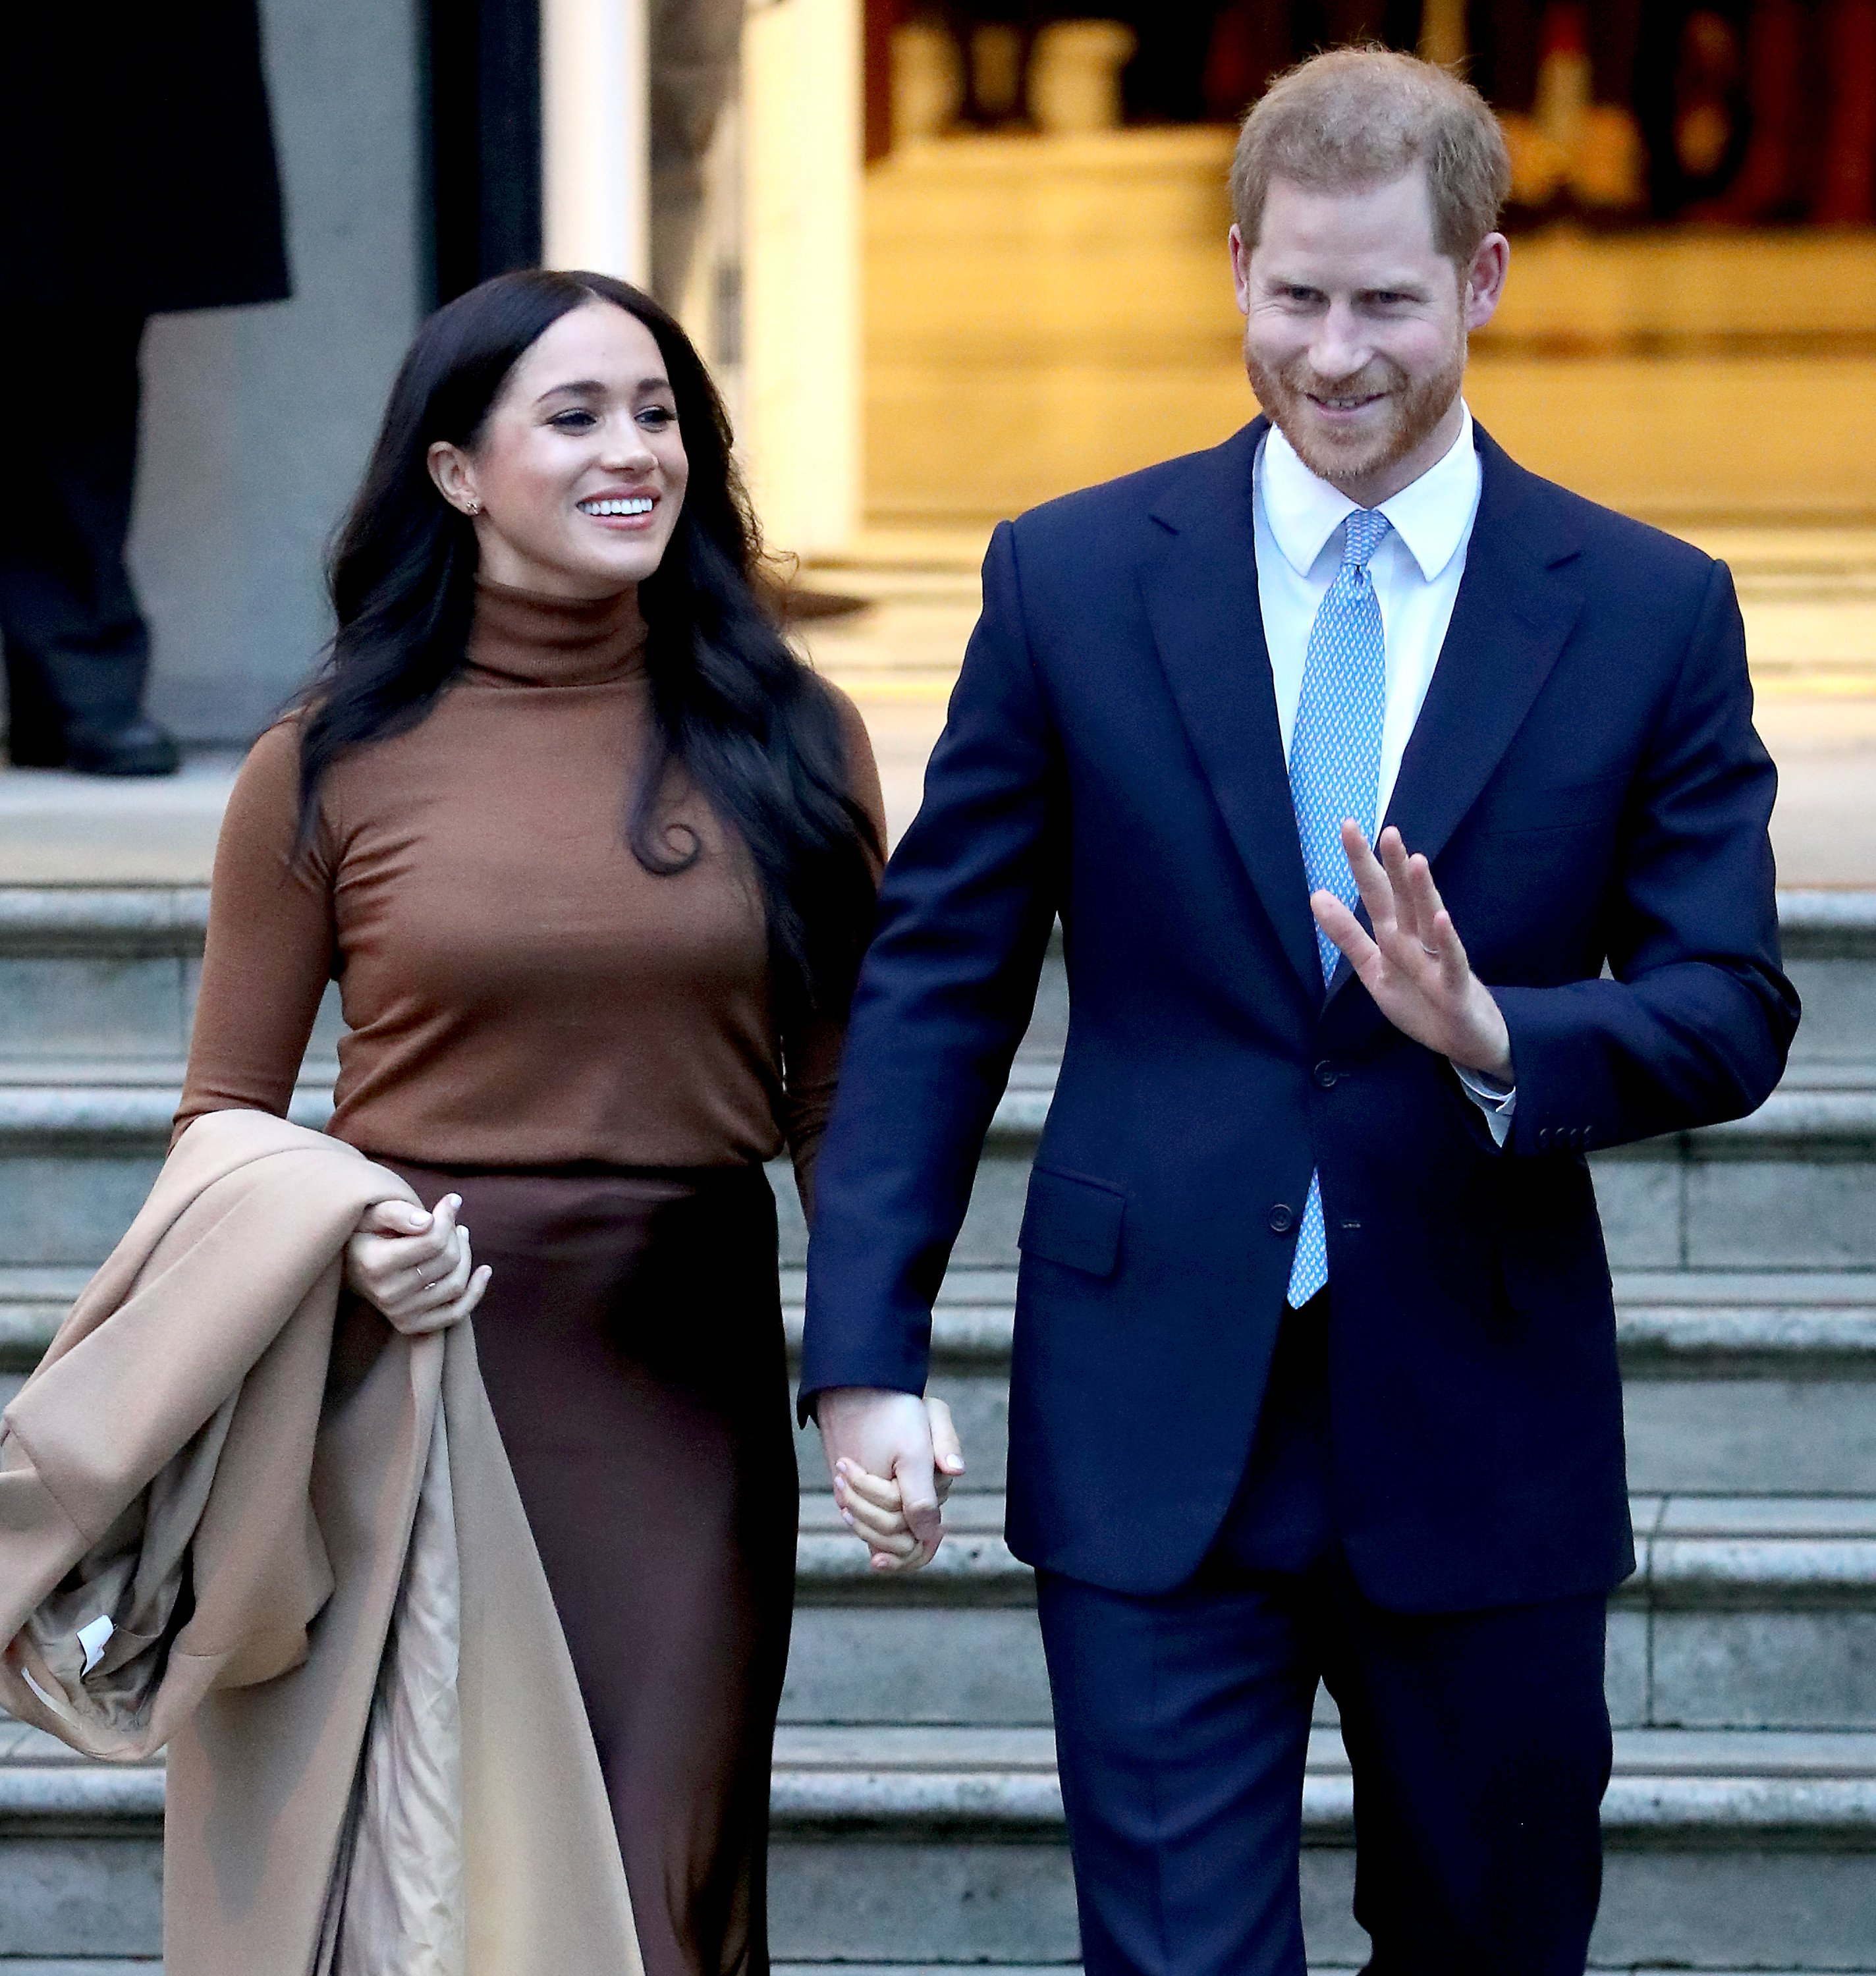 Prince Harry, Duke of Sussex and Meghan, Duchess of Sussex depart Canada House on January 07, 2020 in London, England. | Source: Getty Images